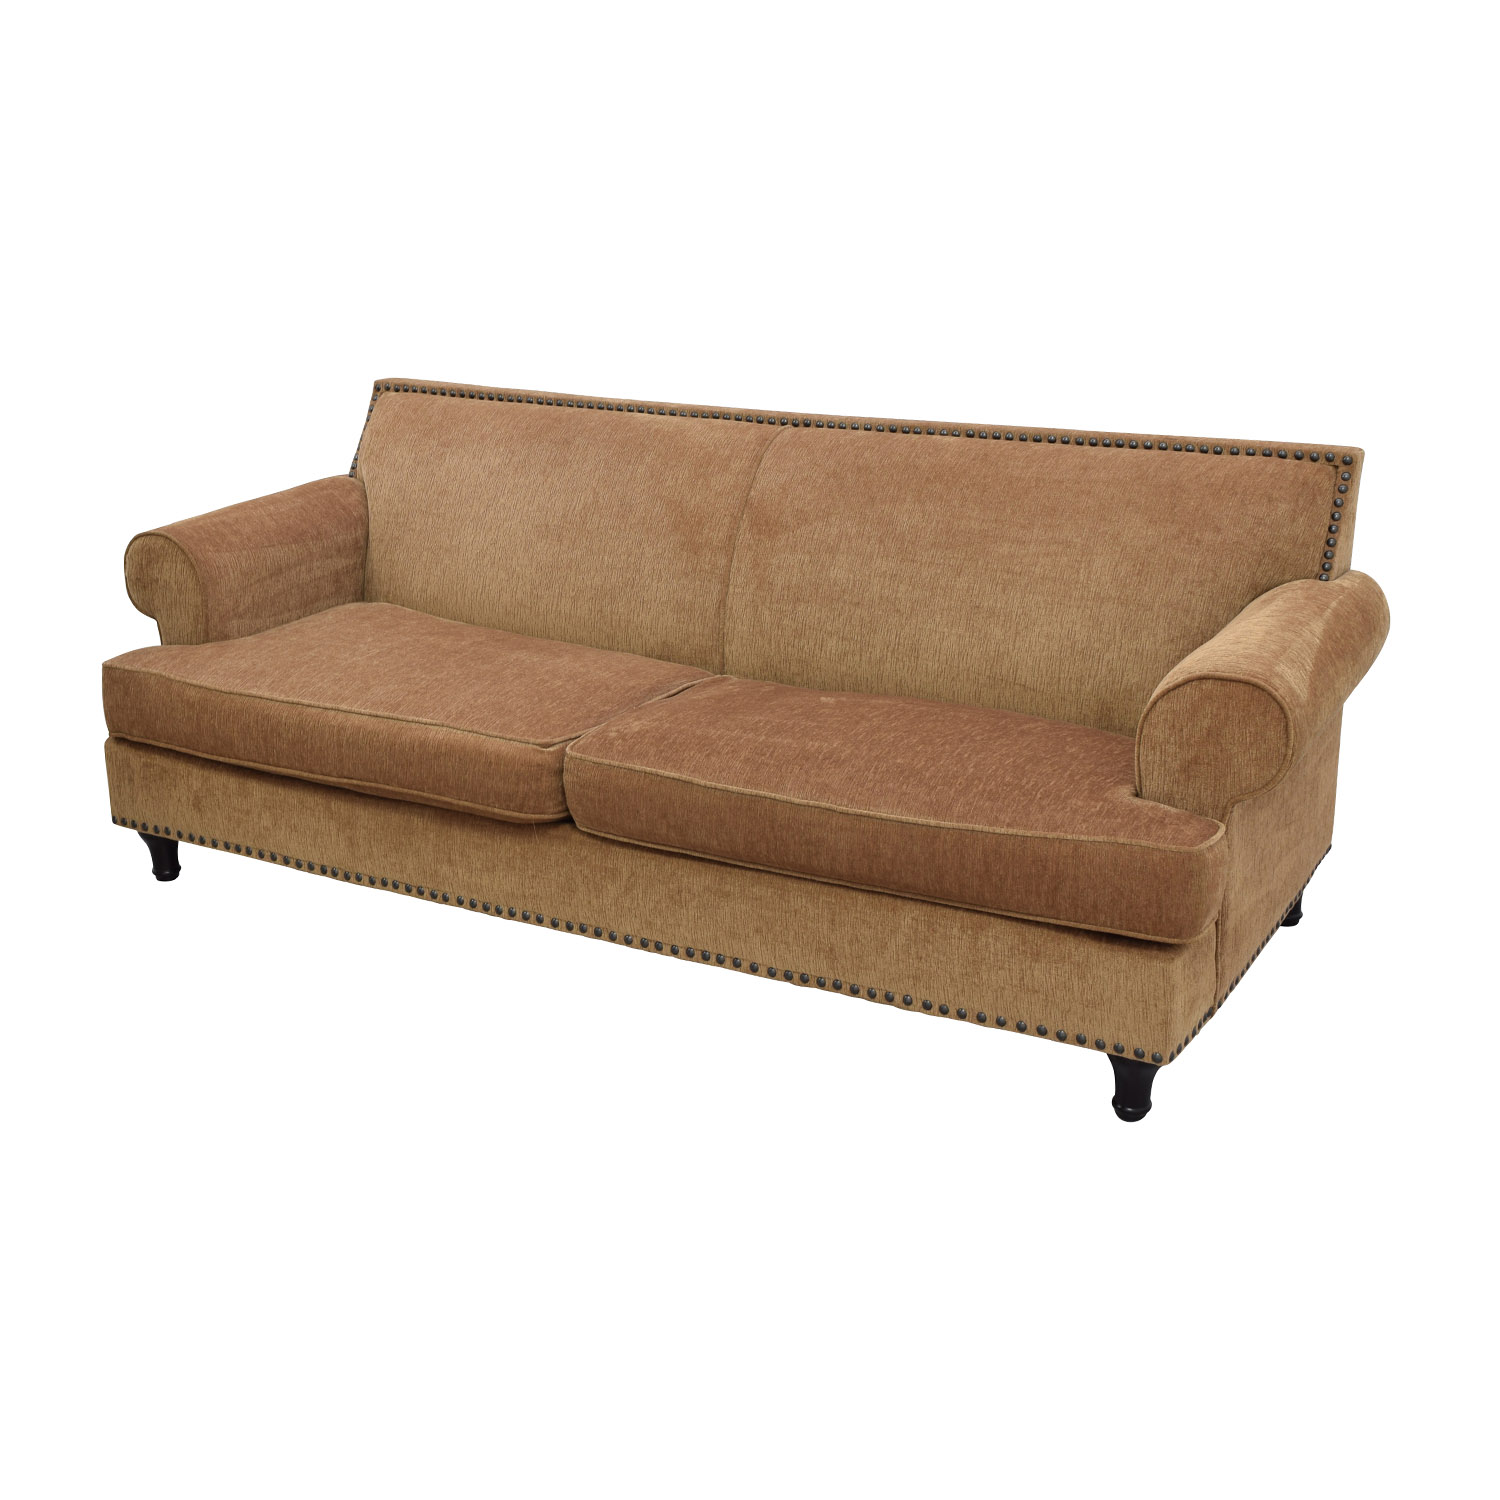 imported sofa how to make a bed more comfortable sit on 58 off pier 1 imports carmen brown